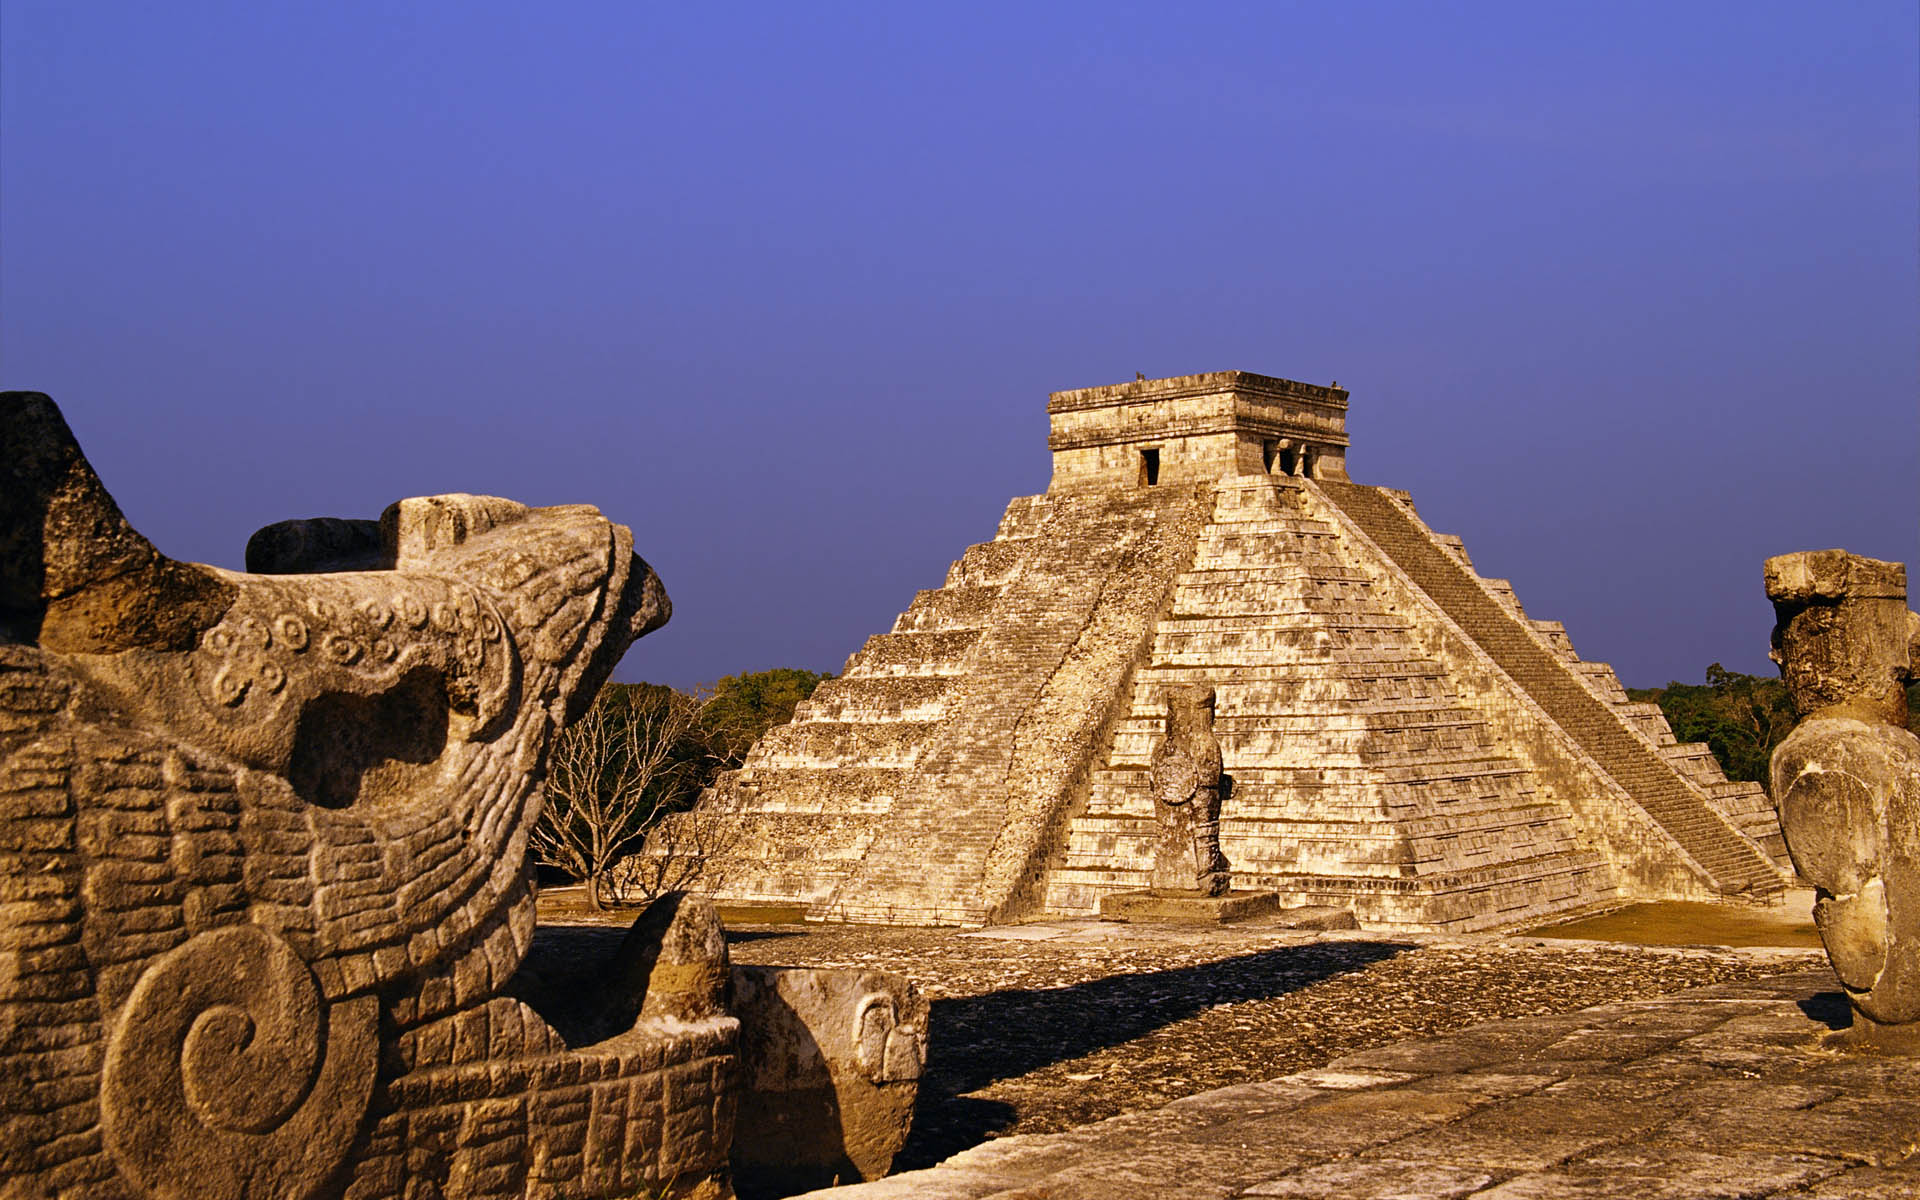 ruins-ancient-pyramids-x-wallpaper-wp428874-1